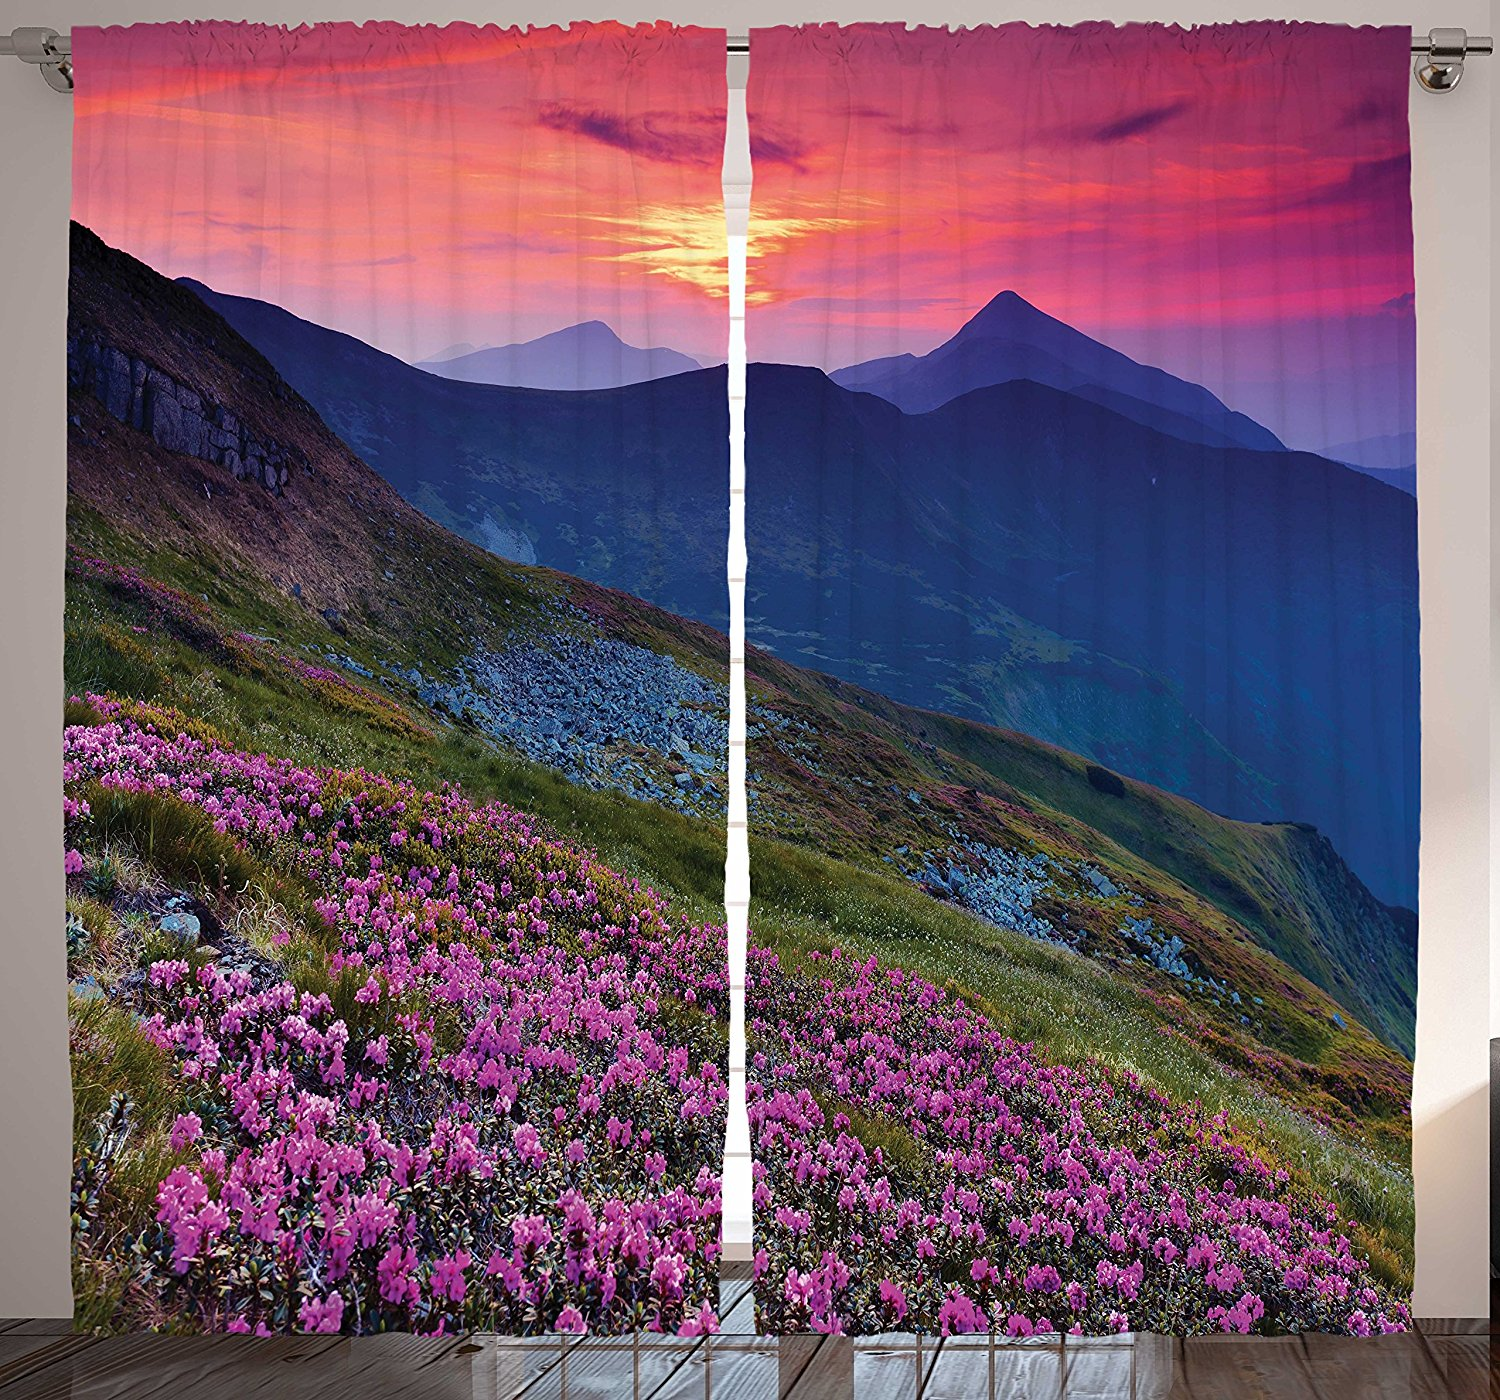 Ambesonne Nature Landscape Modern Home Decor, Mountain Sunset Purple Flowers Valley under Pink Sky View Picture, Bedroom Living Room Curtain 2 Panels Set, 108 X 84 Inches, Red Blue Green Purple